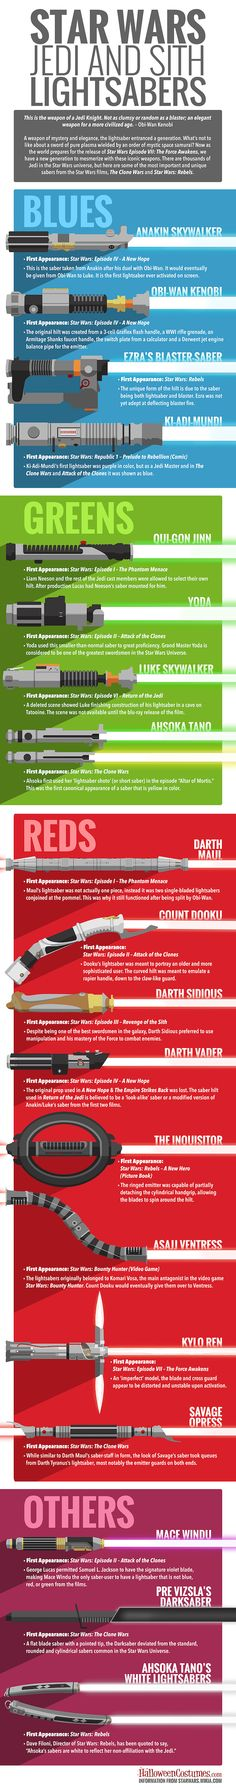 The Most Iconic Lightsabers In The 'Star Wars' Universe [Infographic]